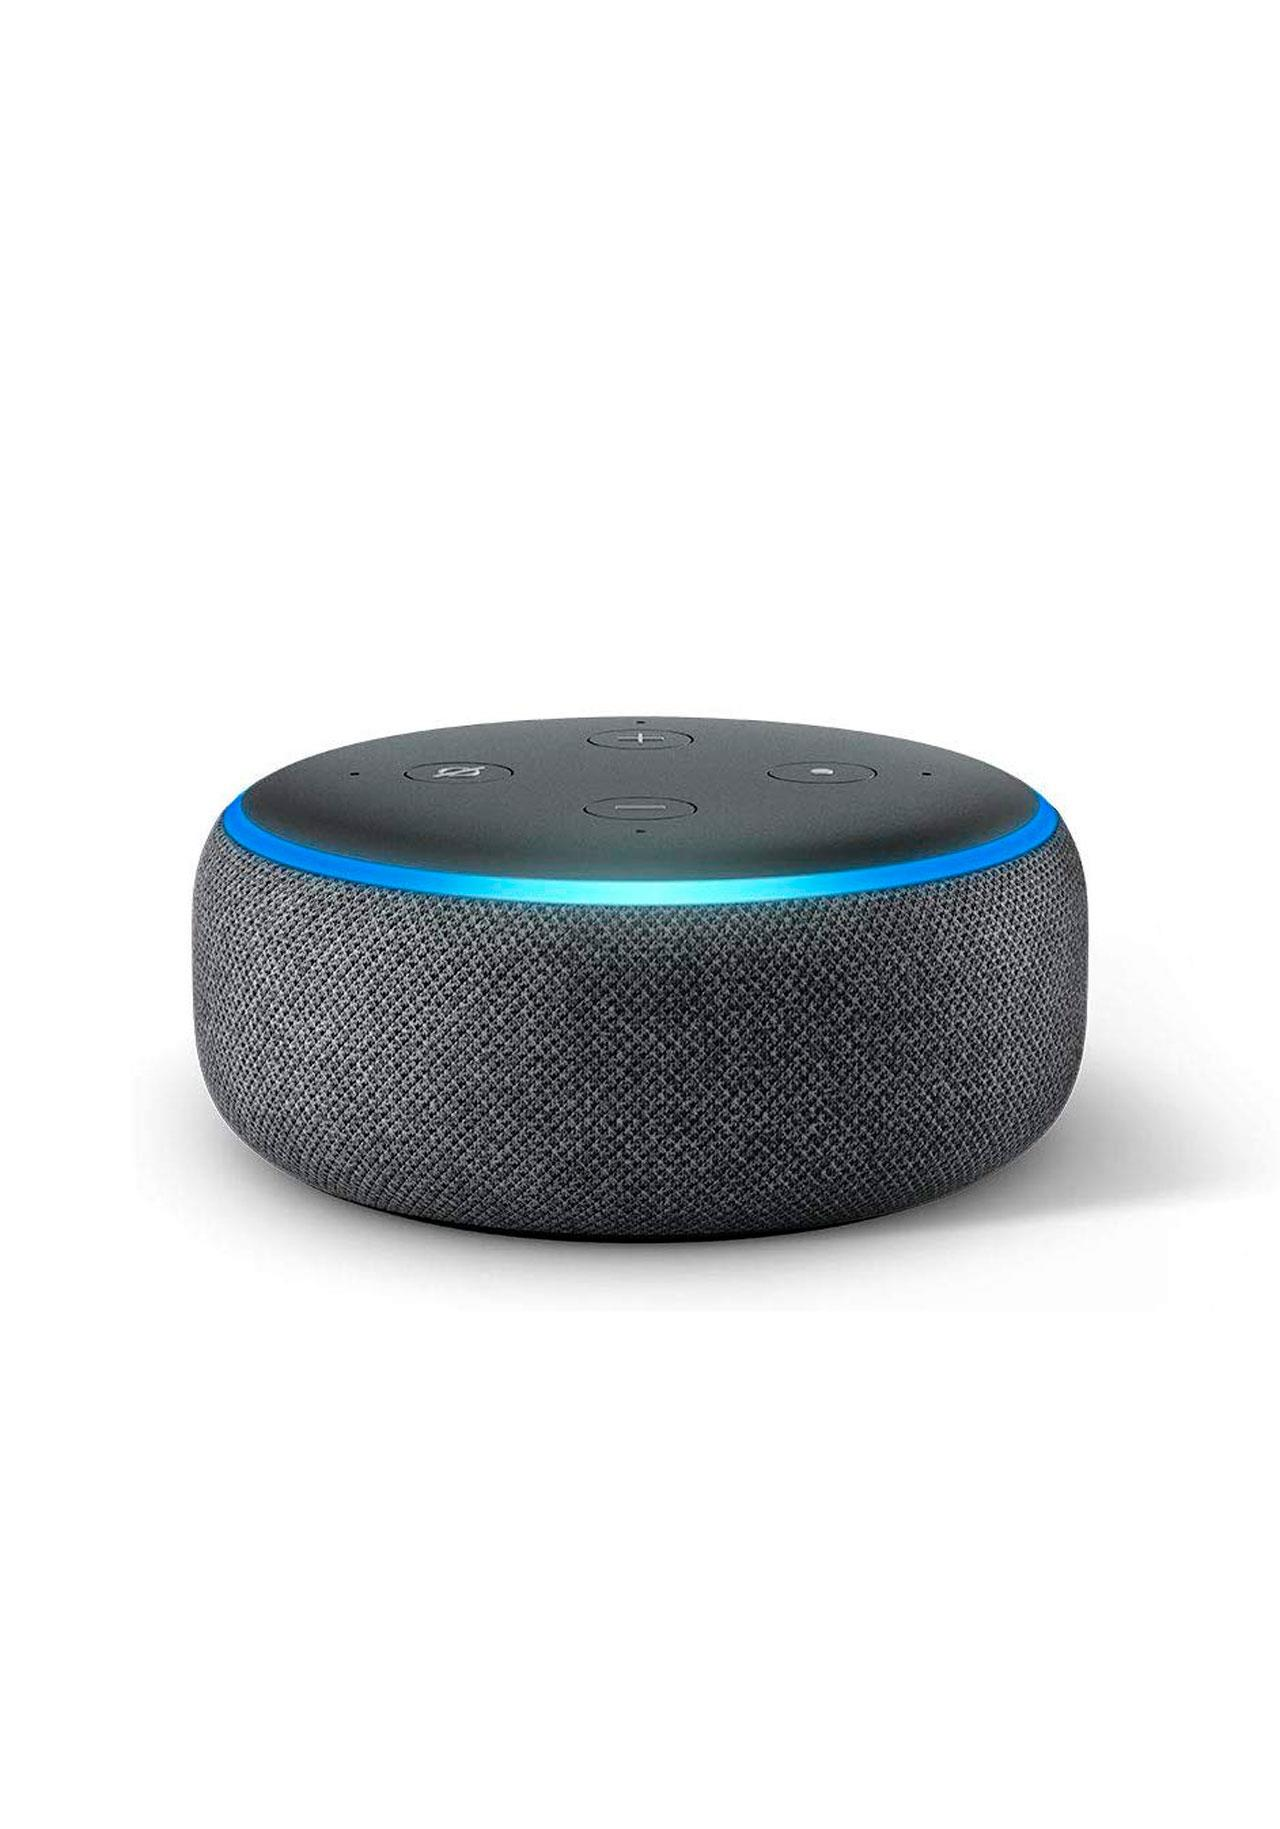 black-friday-amazon-alexa